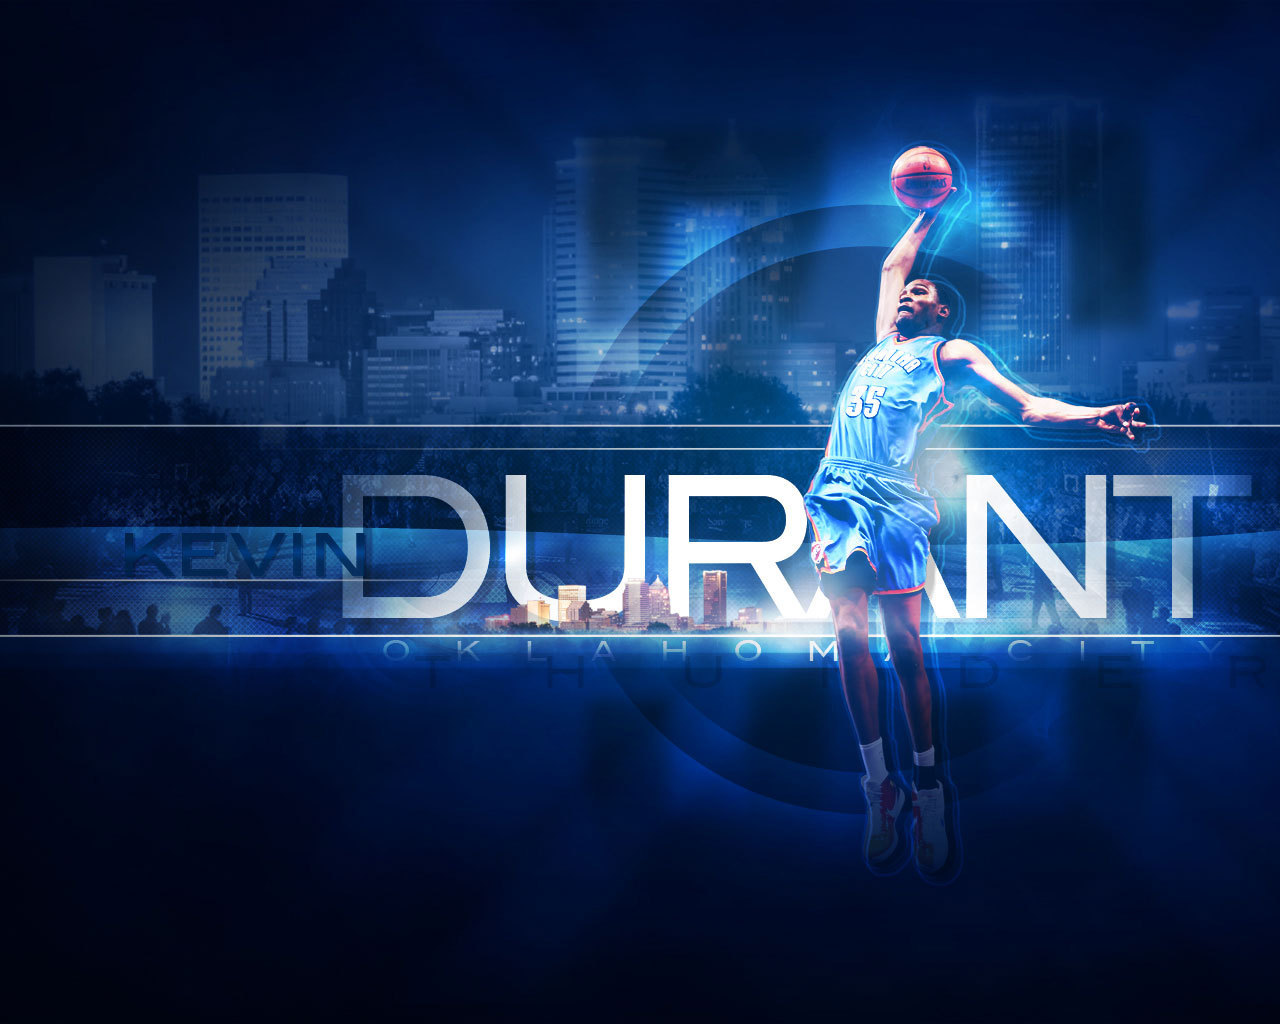 Nice Backgrounds   Kevin Durant Wallpaper 18403482 1280x1024